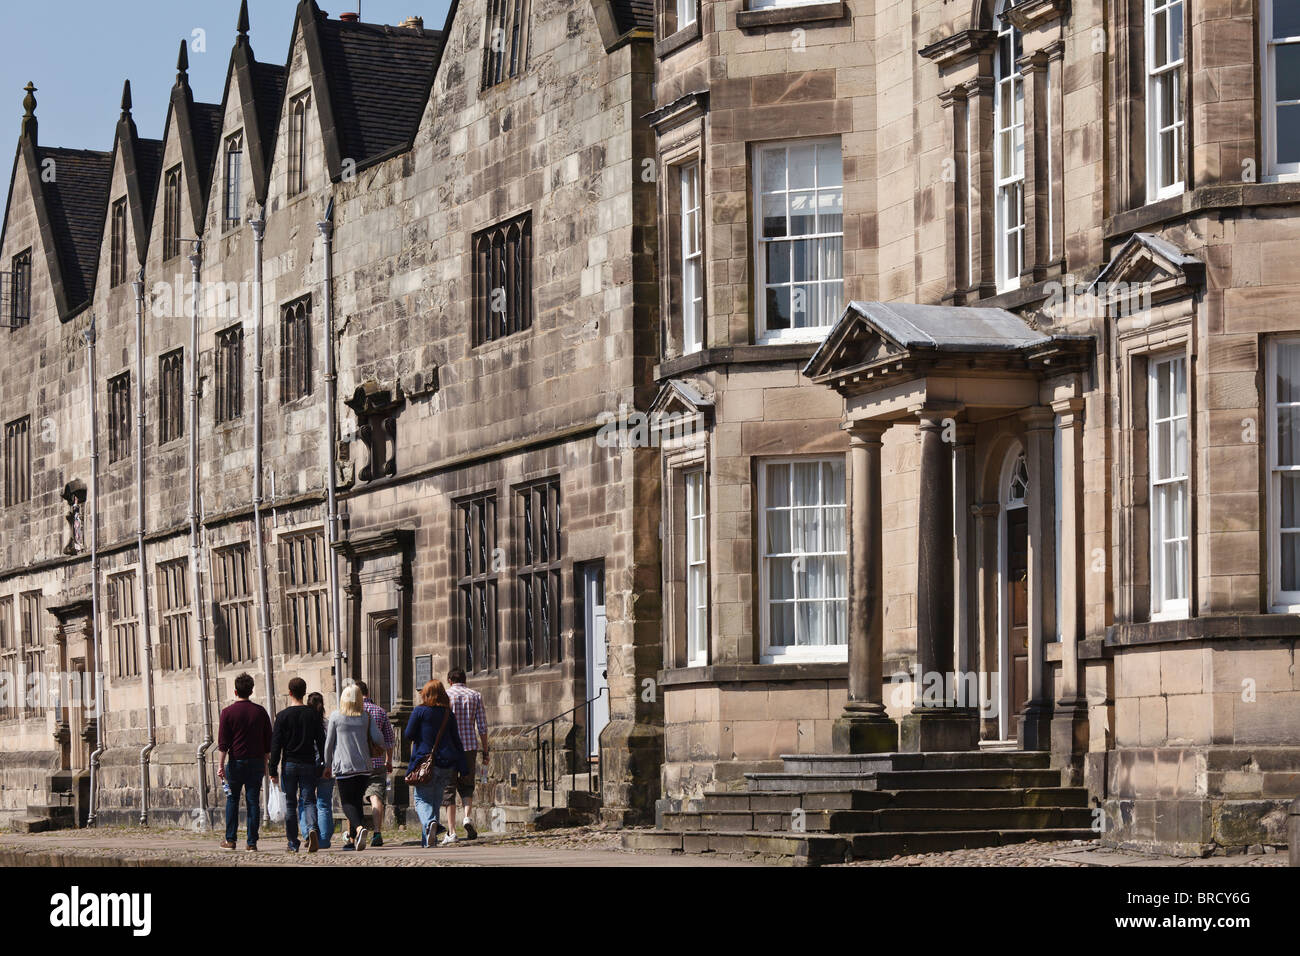 The old Queen Elizabeth's Grammar School building, Church Street, Ashbourne, Peak District, Derbyshire, England, - Stock Image